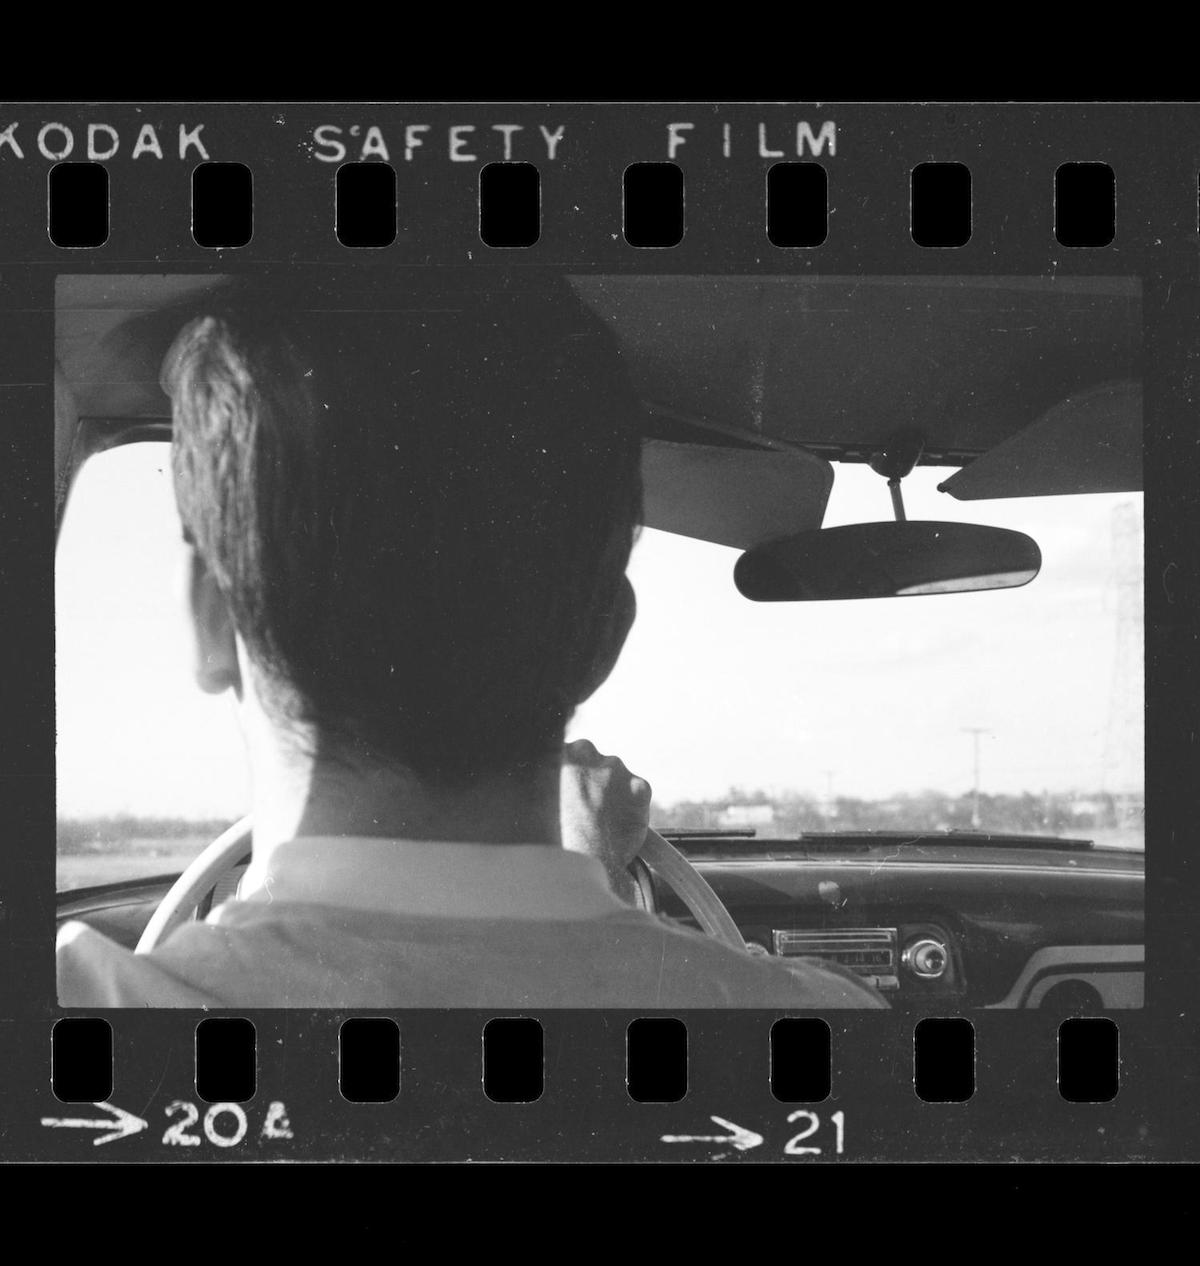 Williams, Byrd Moore, IV. [Photo of a man driving a car], photograph, 1967